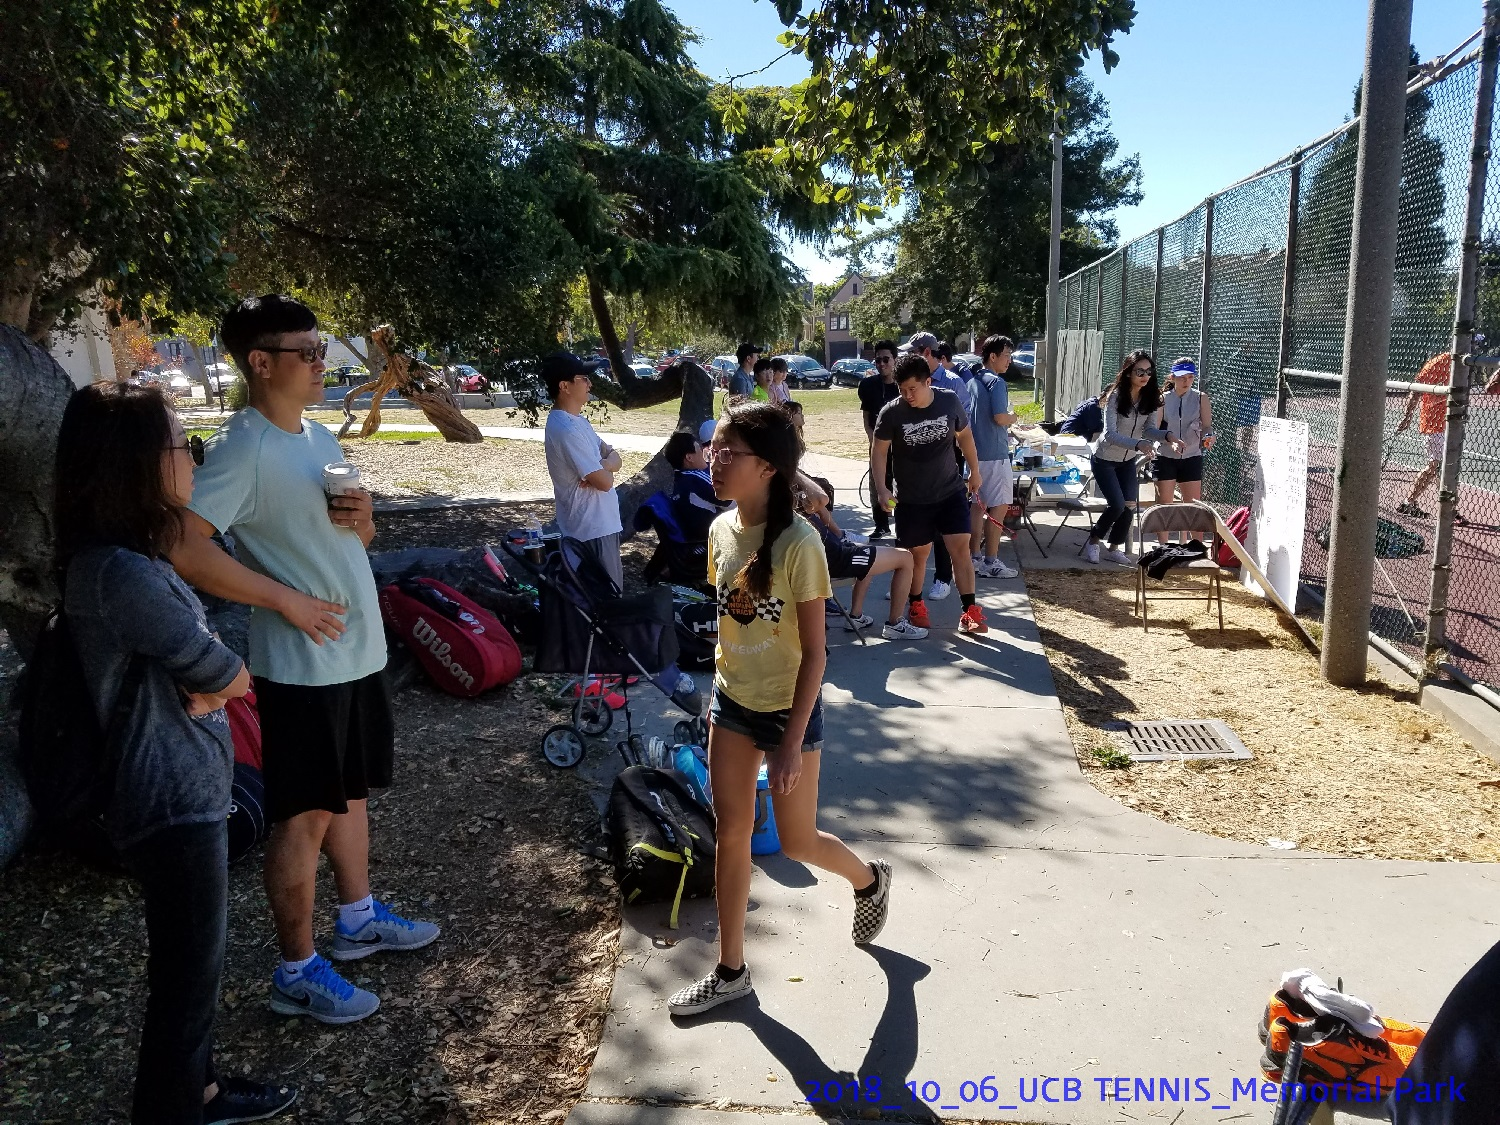 resized_2018_10_06_UCB Tennis at Memorial Park_112939.jpg